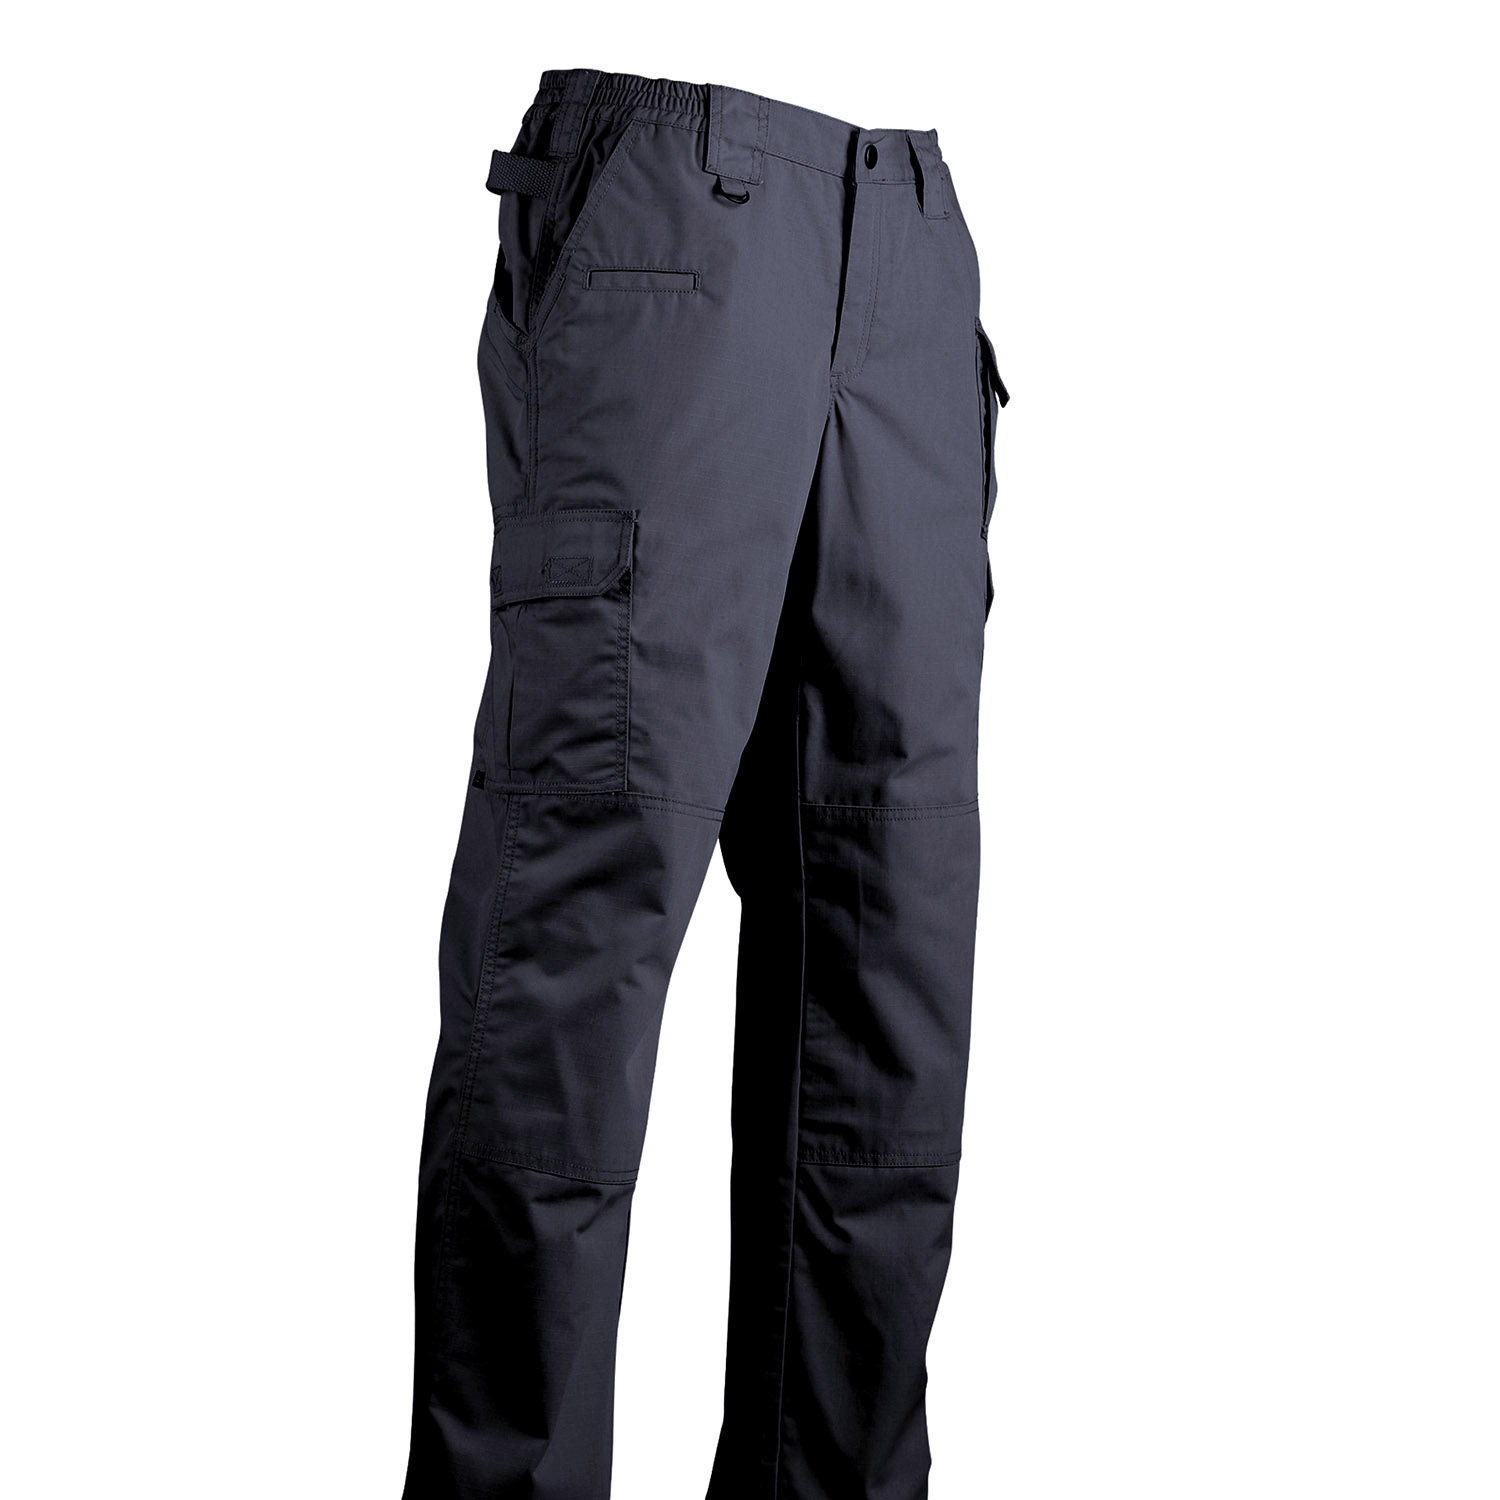 Style 64360 Black NWT Size 2 New 5.11 Women/'s TACLITE PRO Tactical Pants